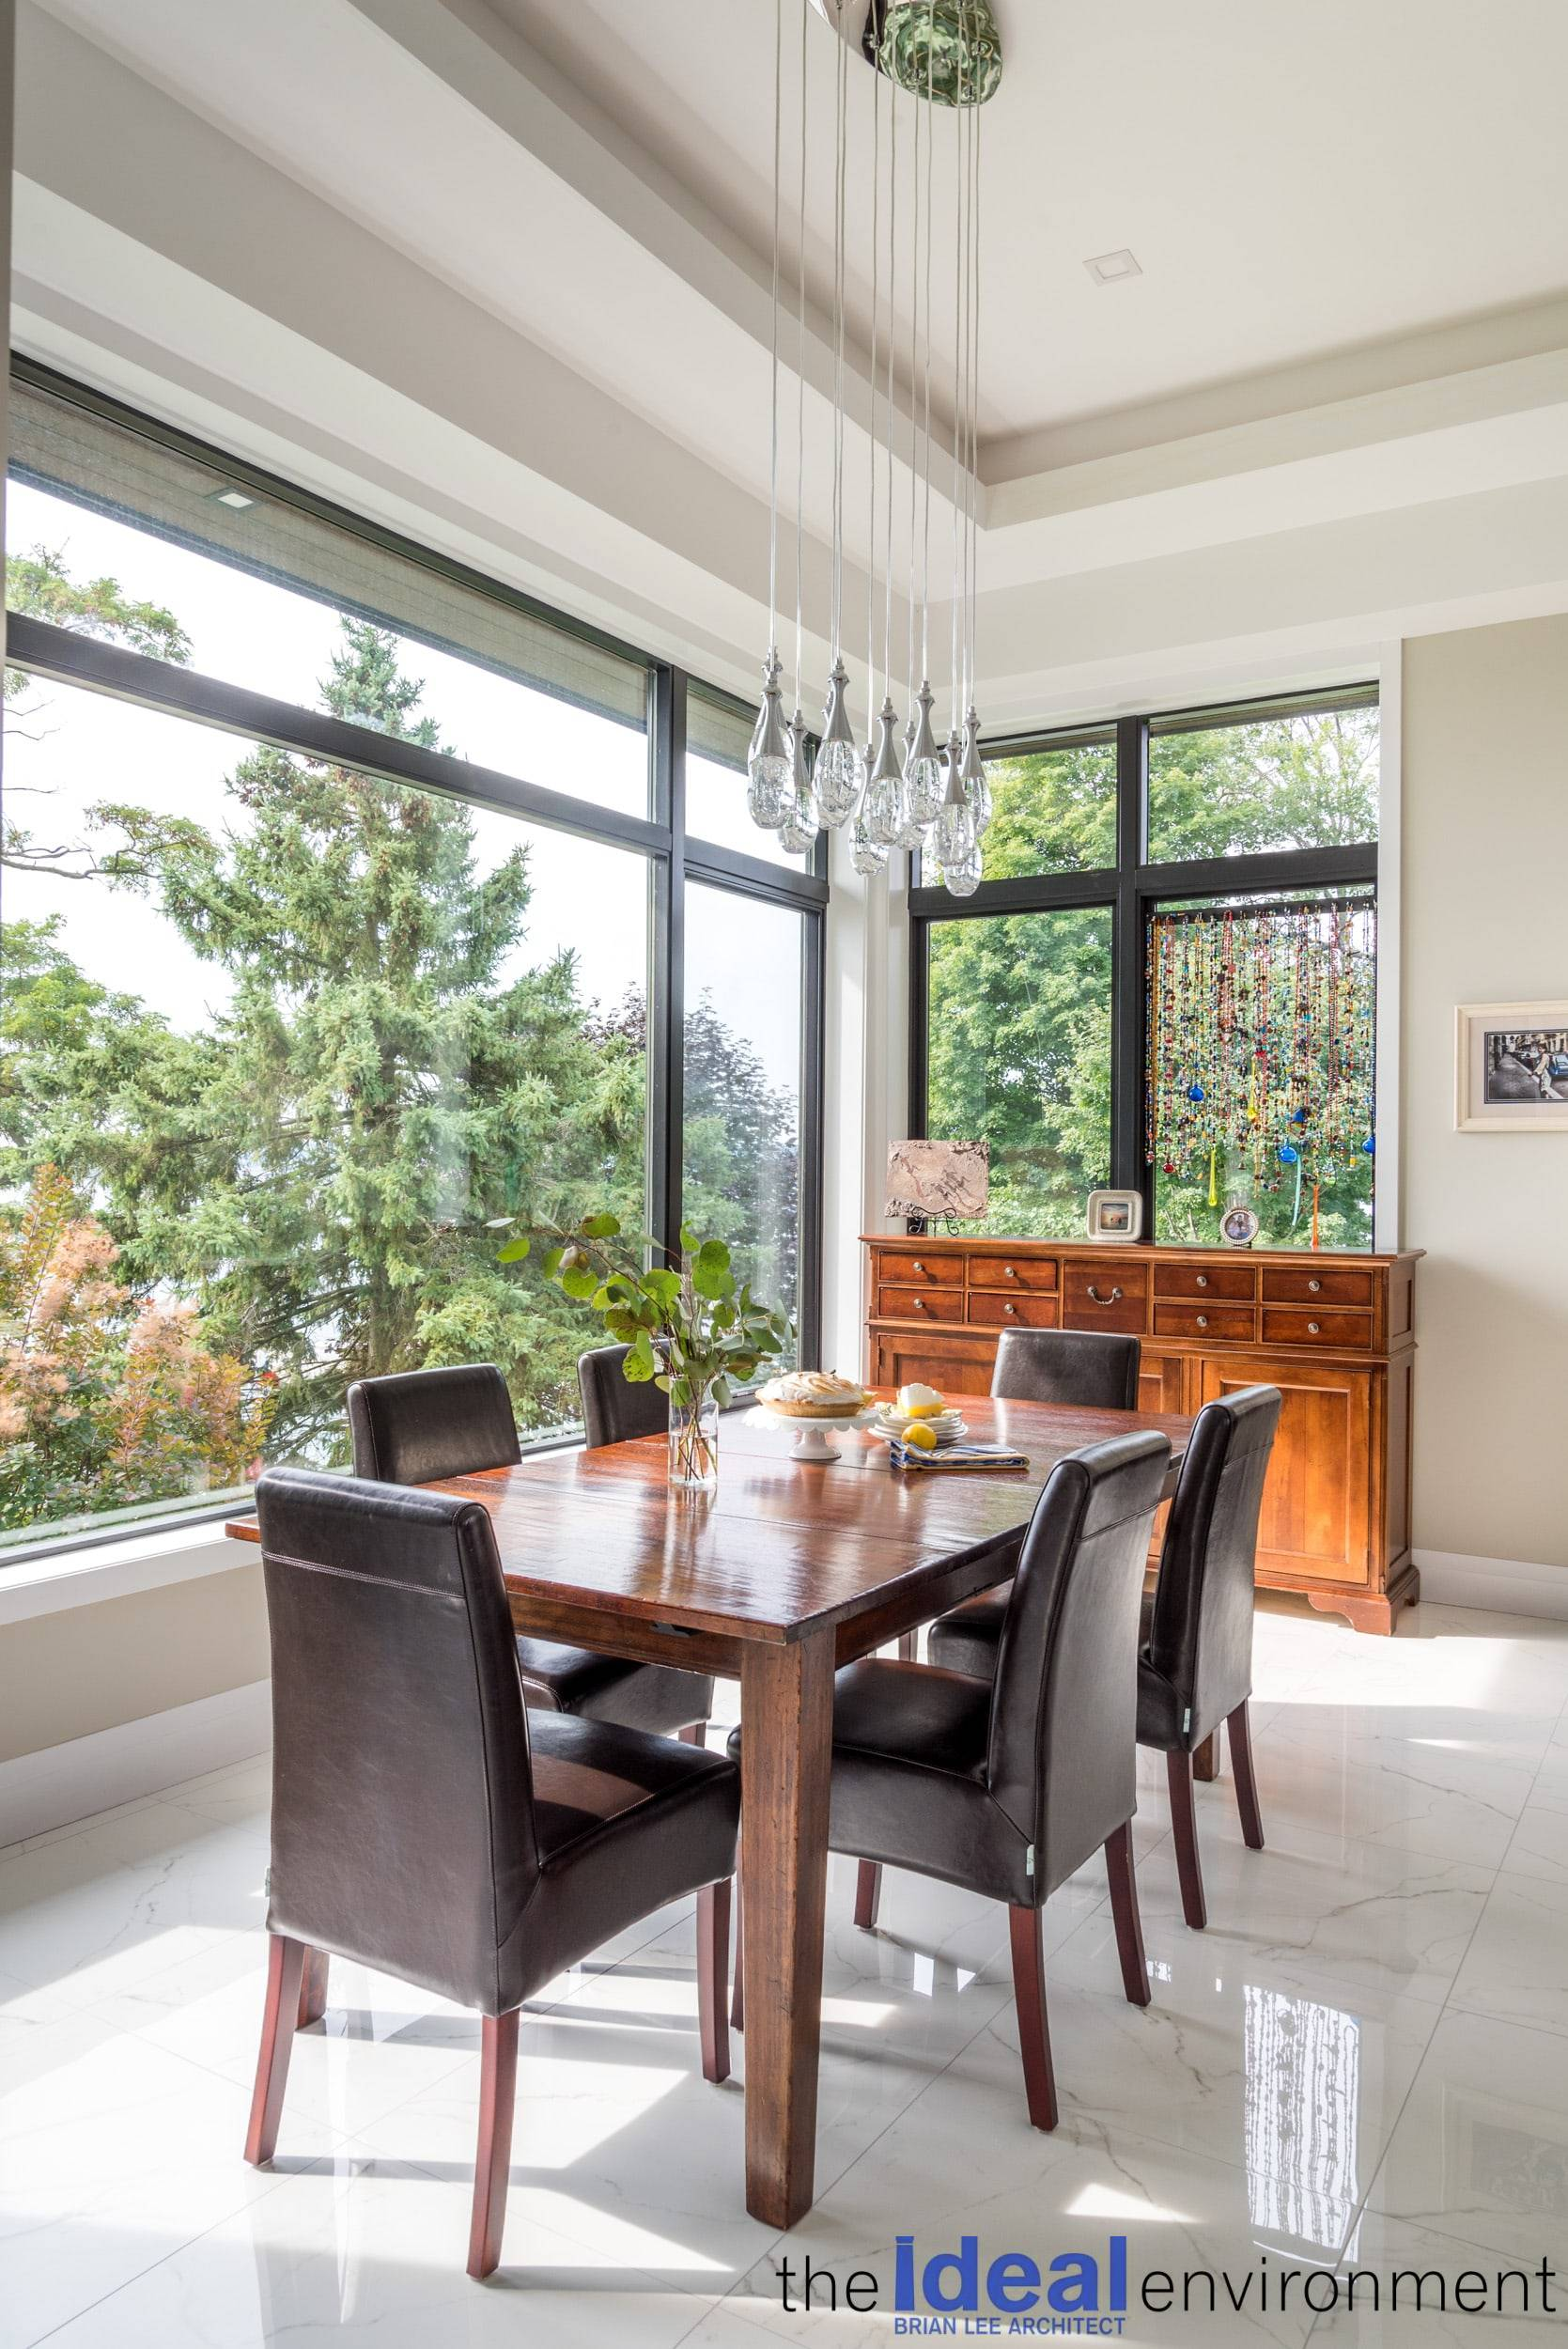 The Ideal Environment - Dining Room Design